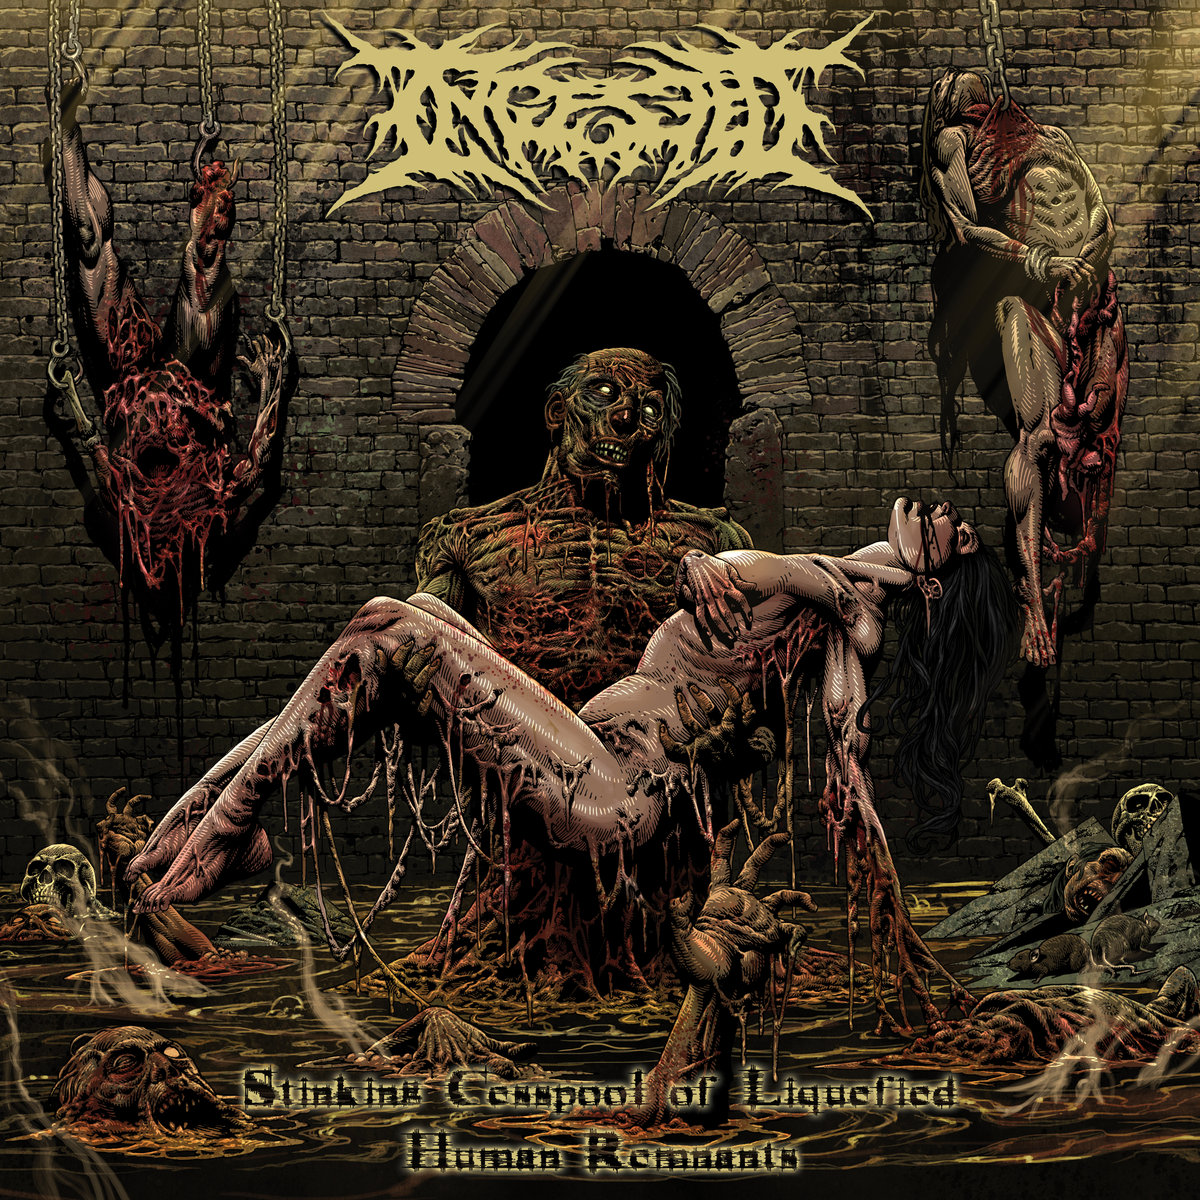 Stinking Cesspool of Liquified Human Remnants Ingested Cover Artwork